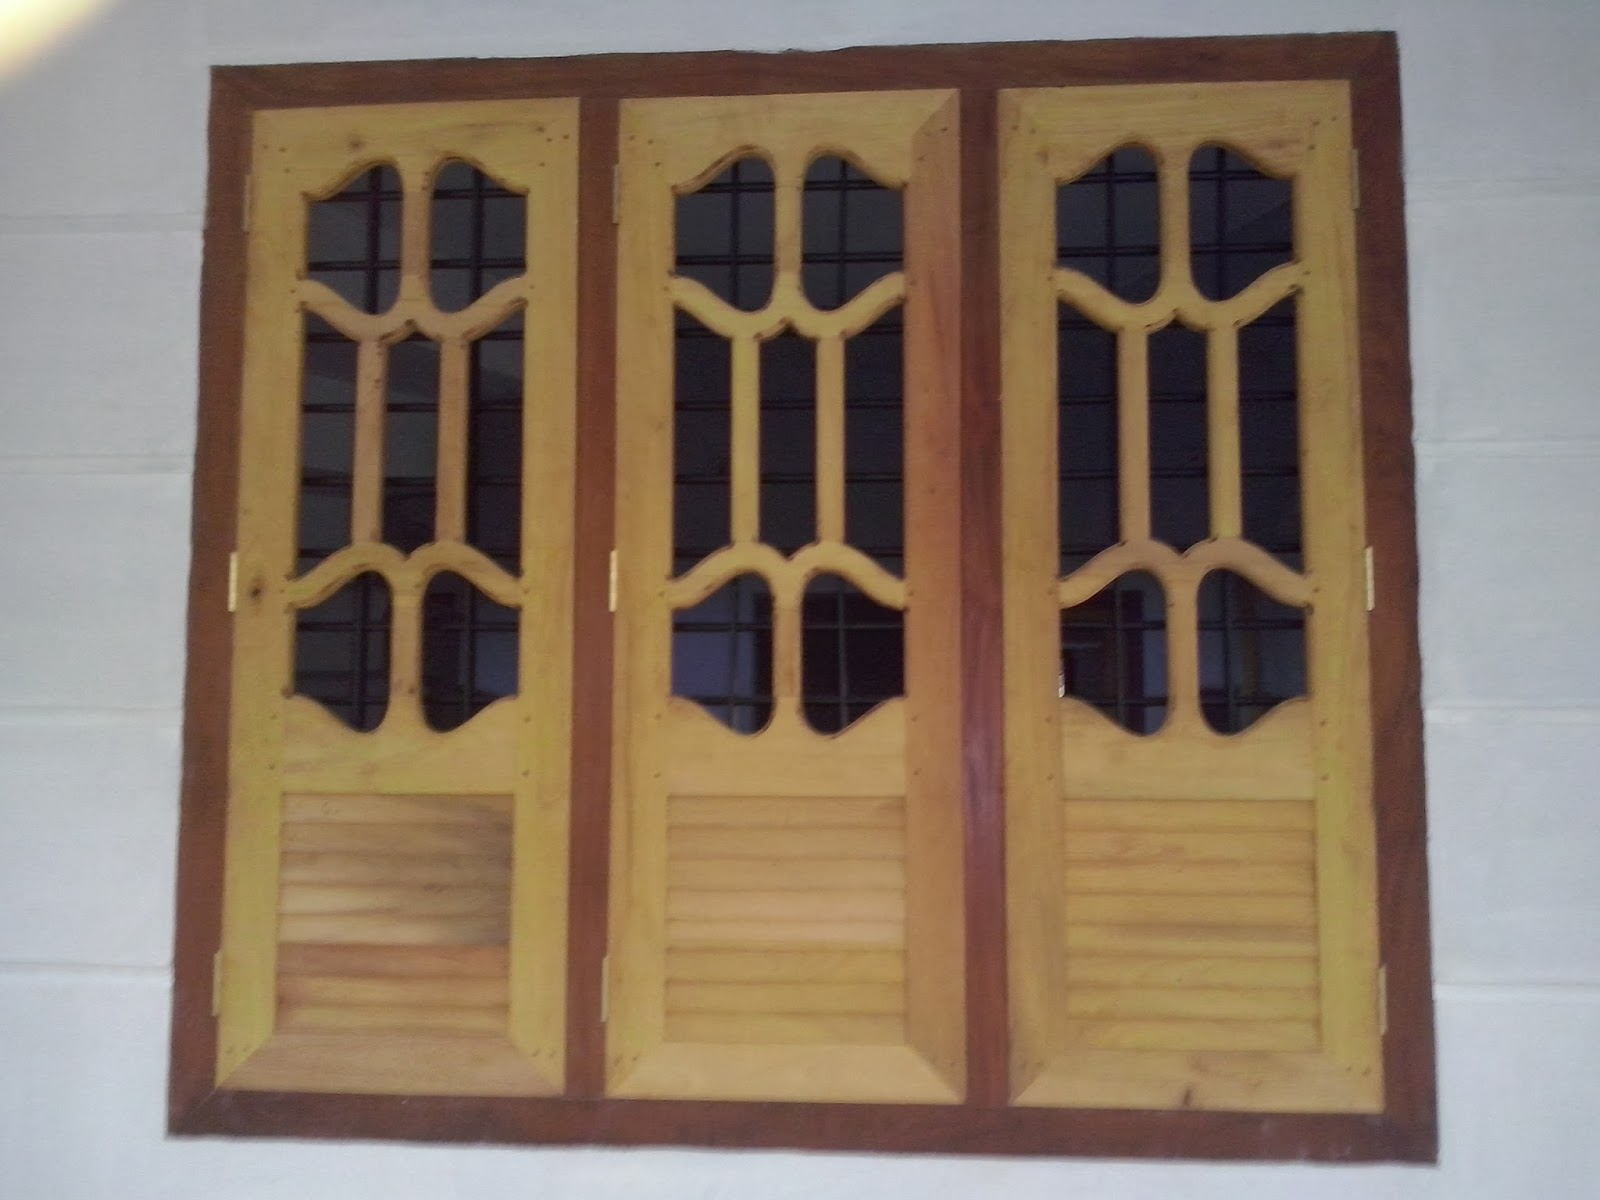 Bavas wood works window door design pictures for Wooden window design with glass